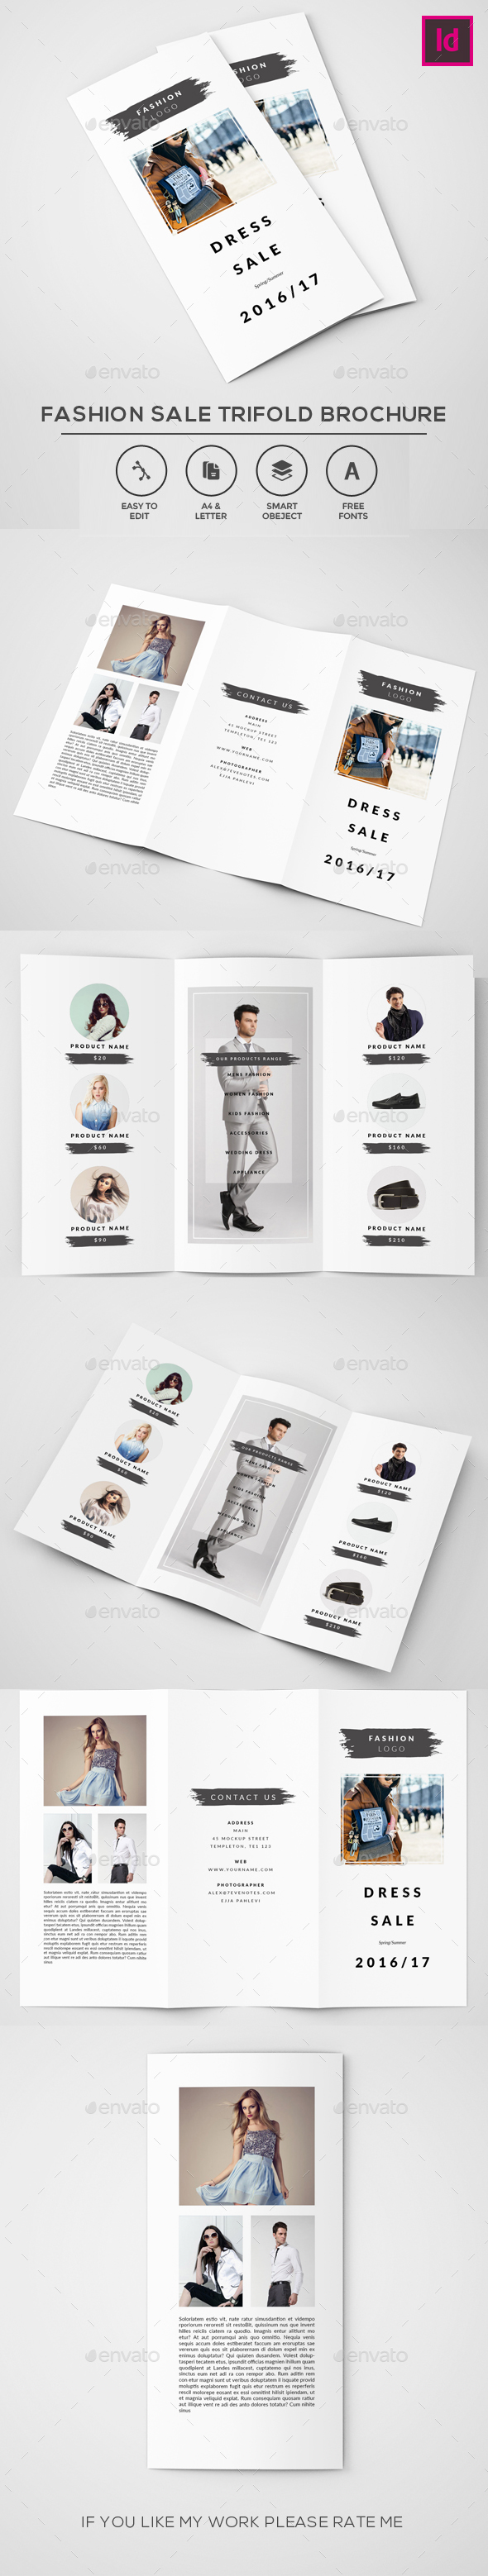 Fashion Sale Trifold Brochure - Brochures Print Templates